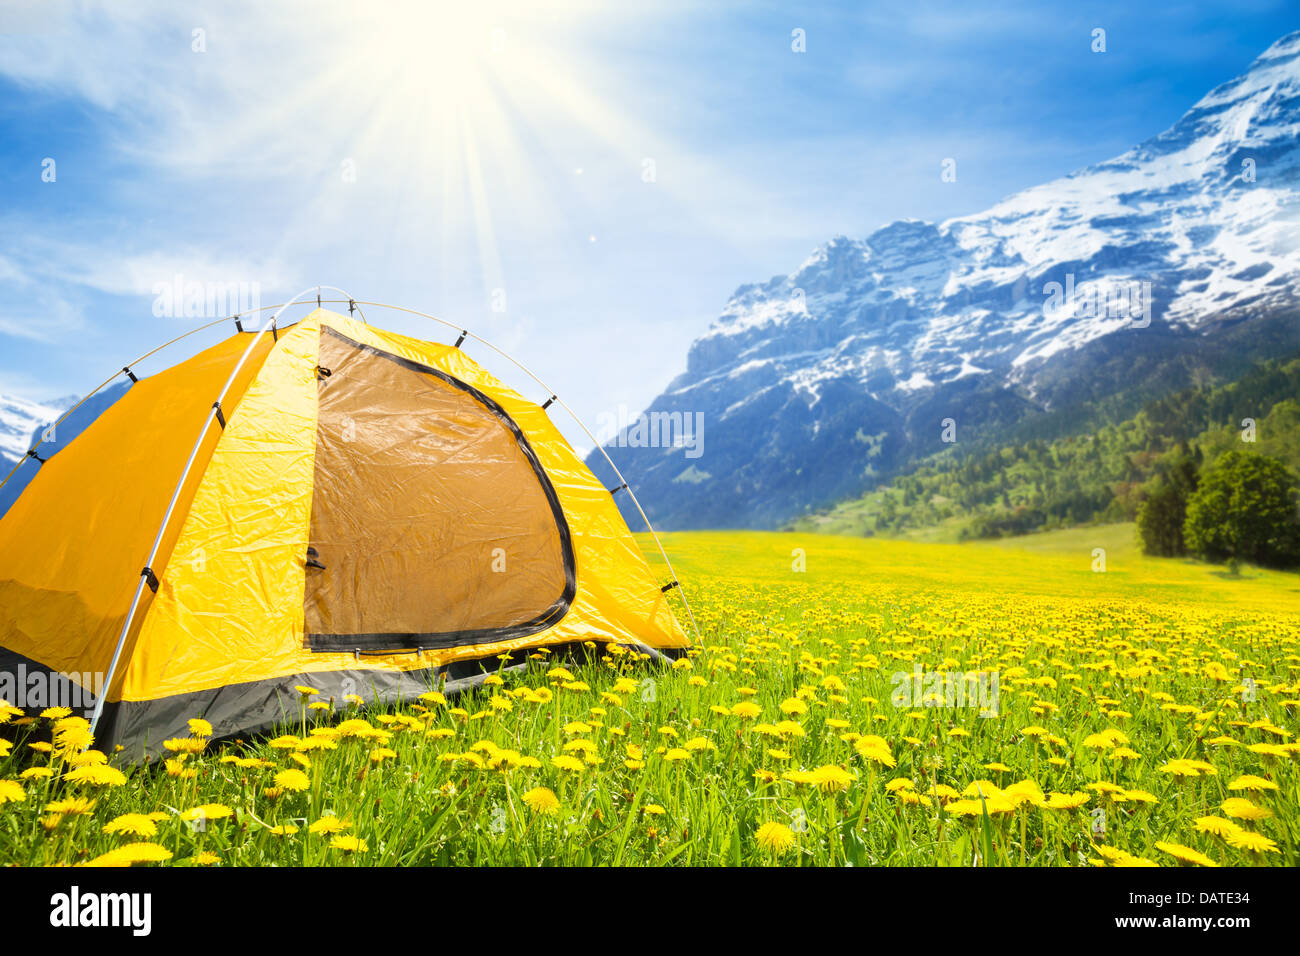 Big Yellow Family Sized Camping Tent In The Nice Dandelion Field With Mountains On Background